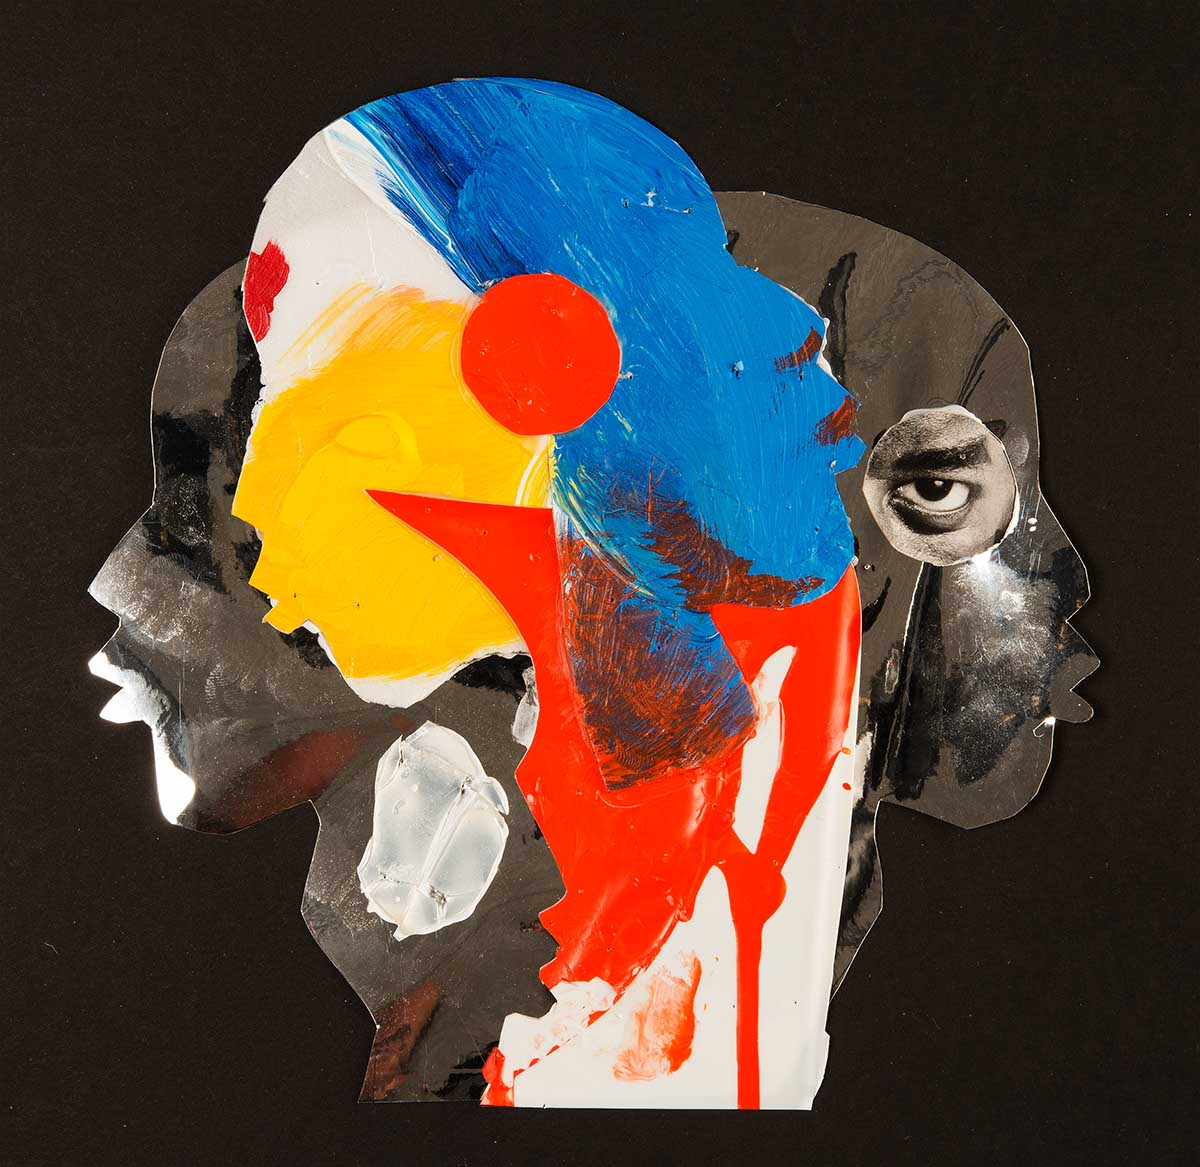 A painting collage of three faces.